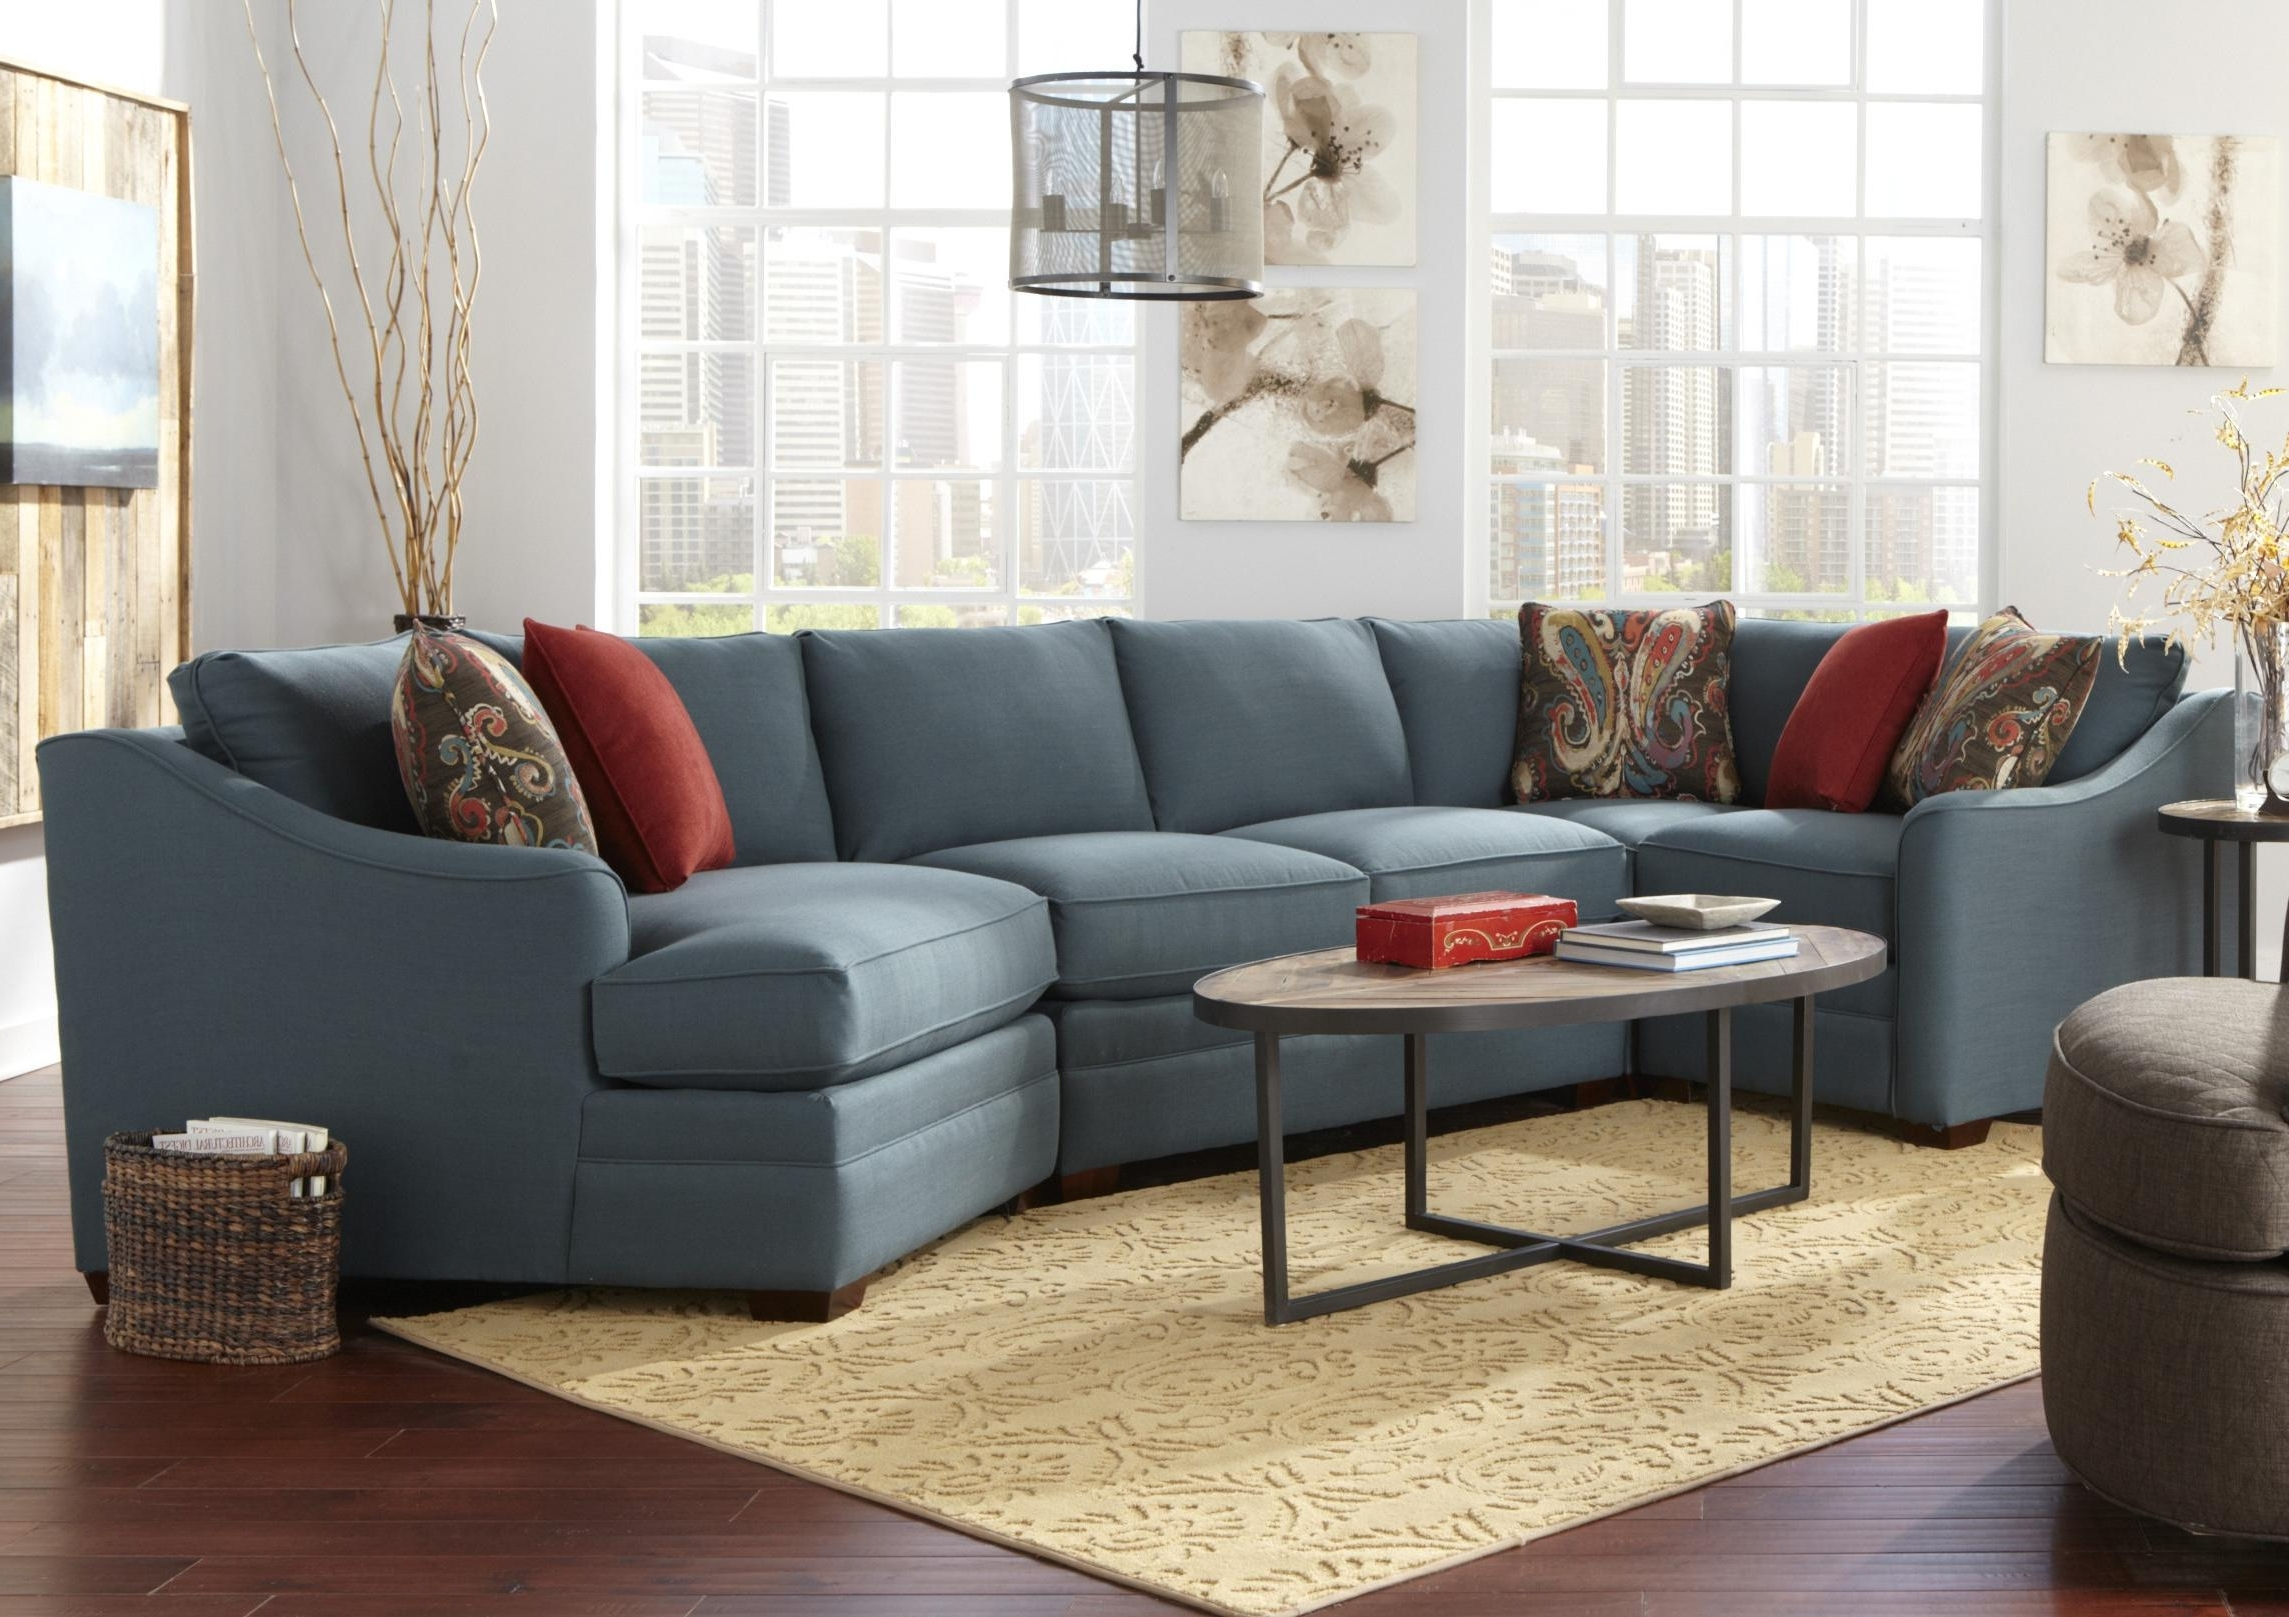 Sectional Sofas With Cuddler Chaise Within Most Recent Four Piece <B>Customizable</b> Sectional Sofa With Raf Cuddler (View 17 of 20)